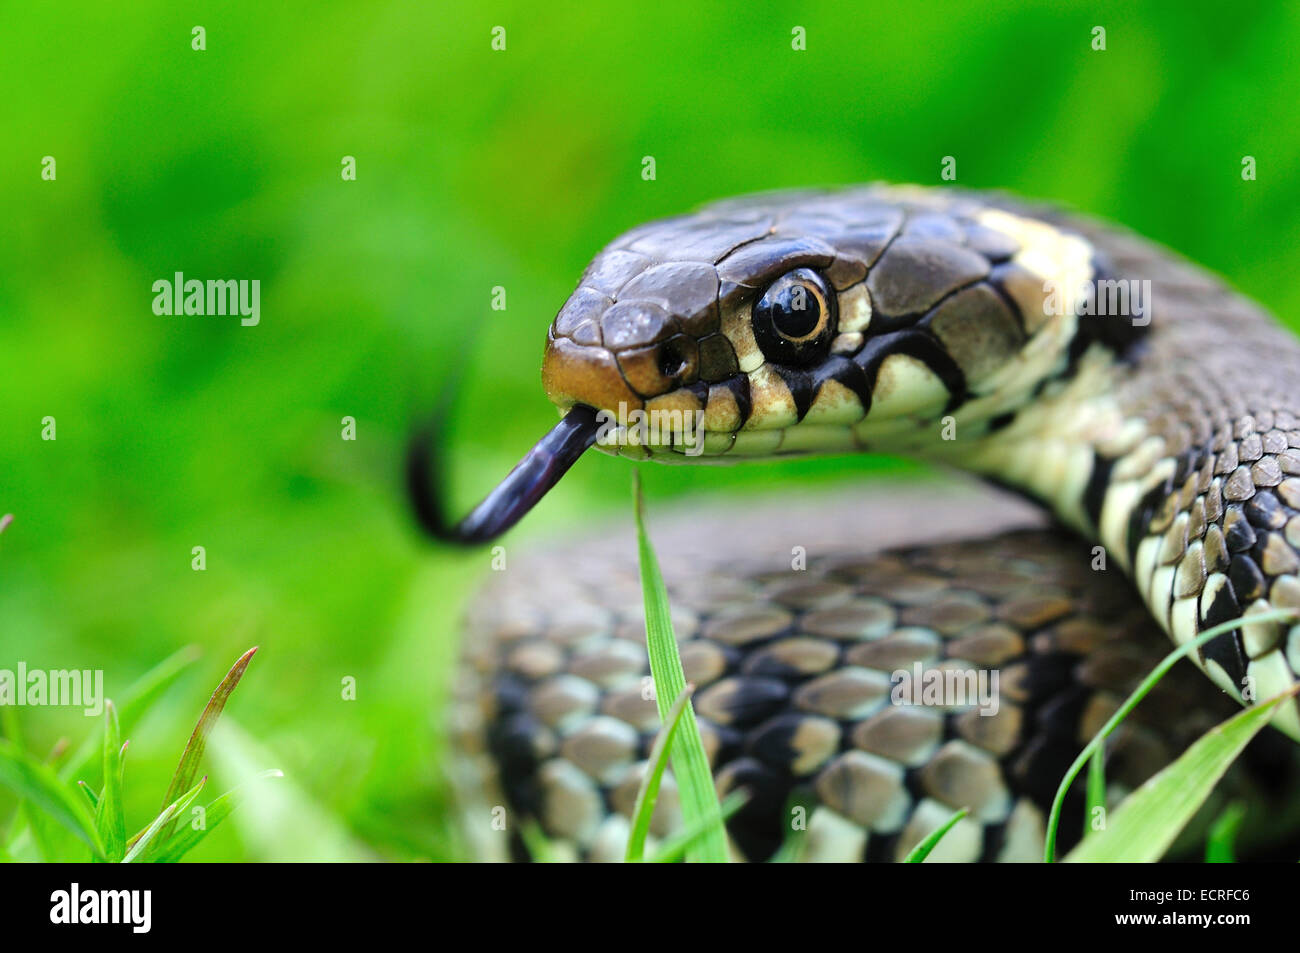 Grass snake with its forked tongue out UK - Stock Image